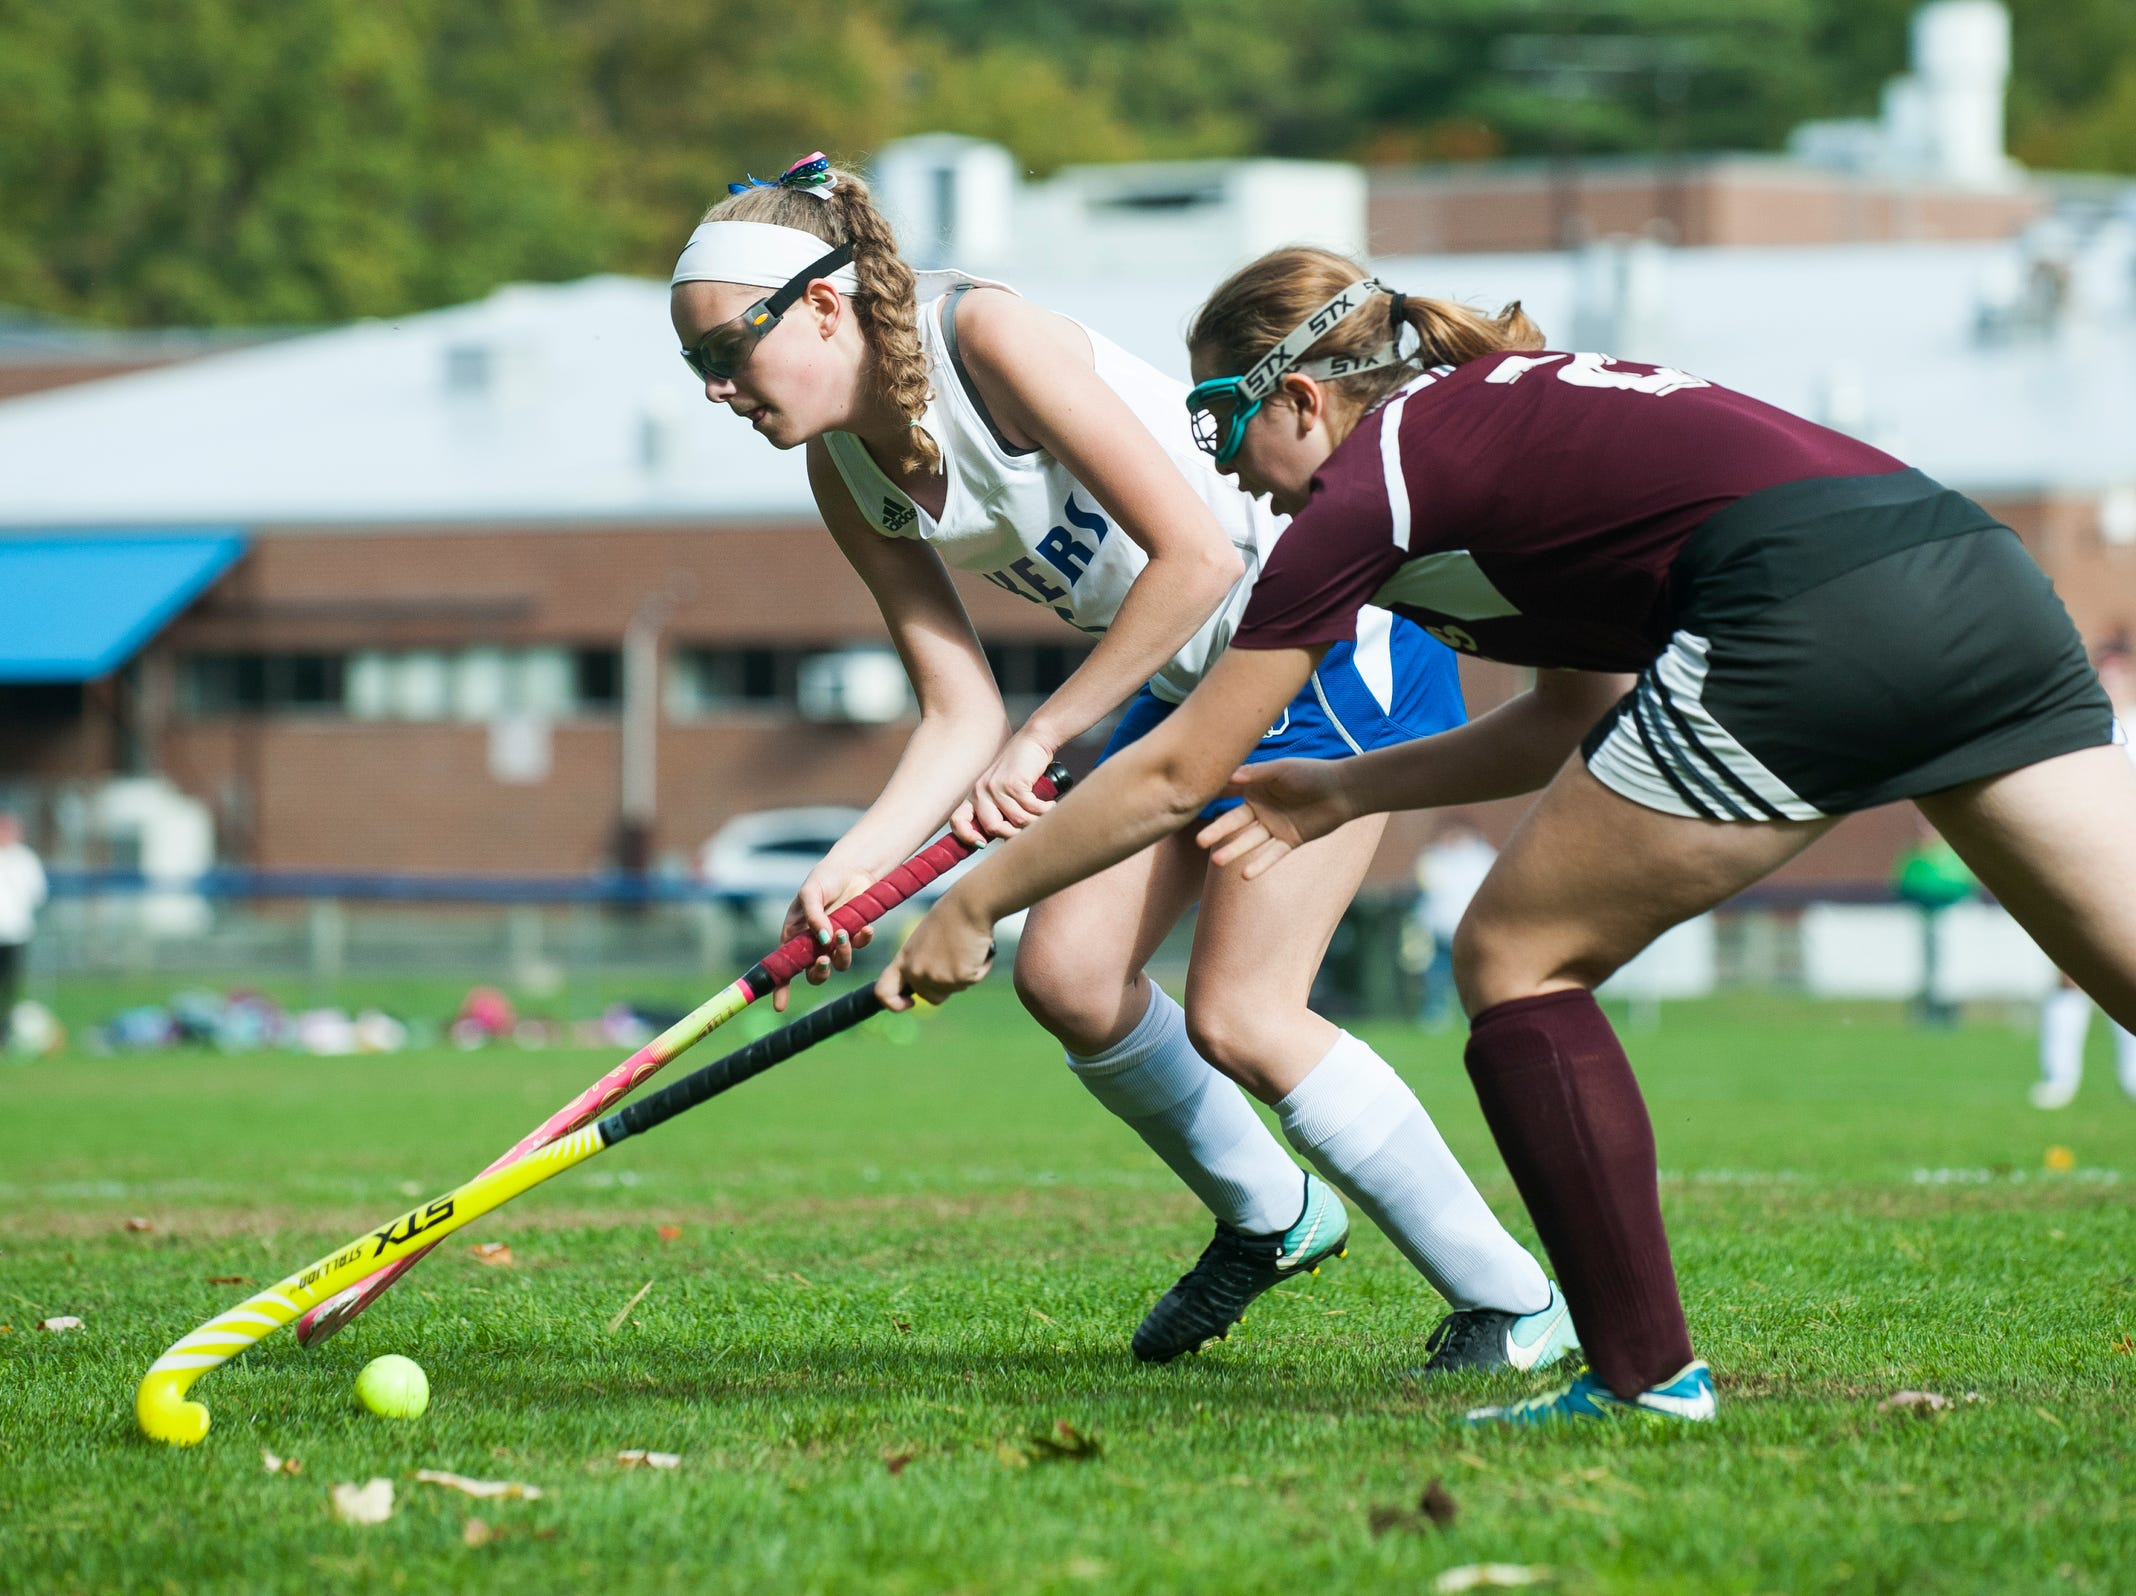 Colchester's Jackie Palaza (5) runs past Mt. Abraham's Elizabeth Porter (2) with the ball during the field hockey game between Mount Abraham and Colchester at Colchester High School on Saturday morning October 20, 2018 in Colchester.